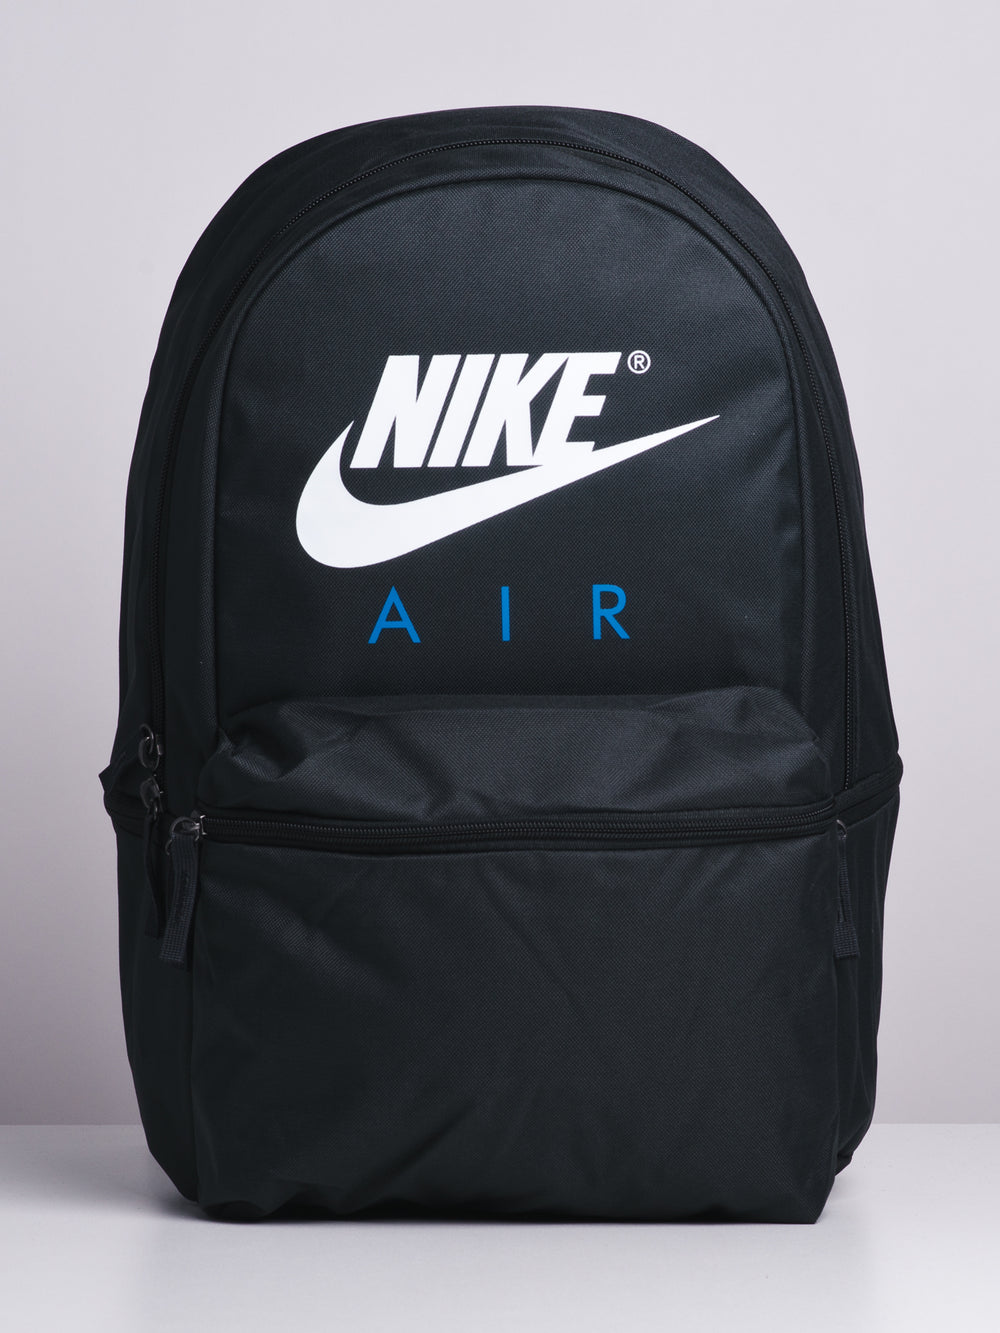 216792586bfd NIKE AIR BACKPACK - ANTHRACITE